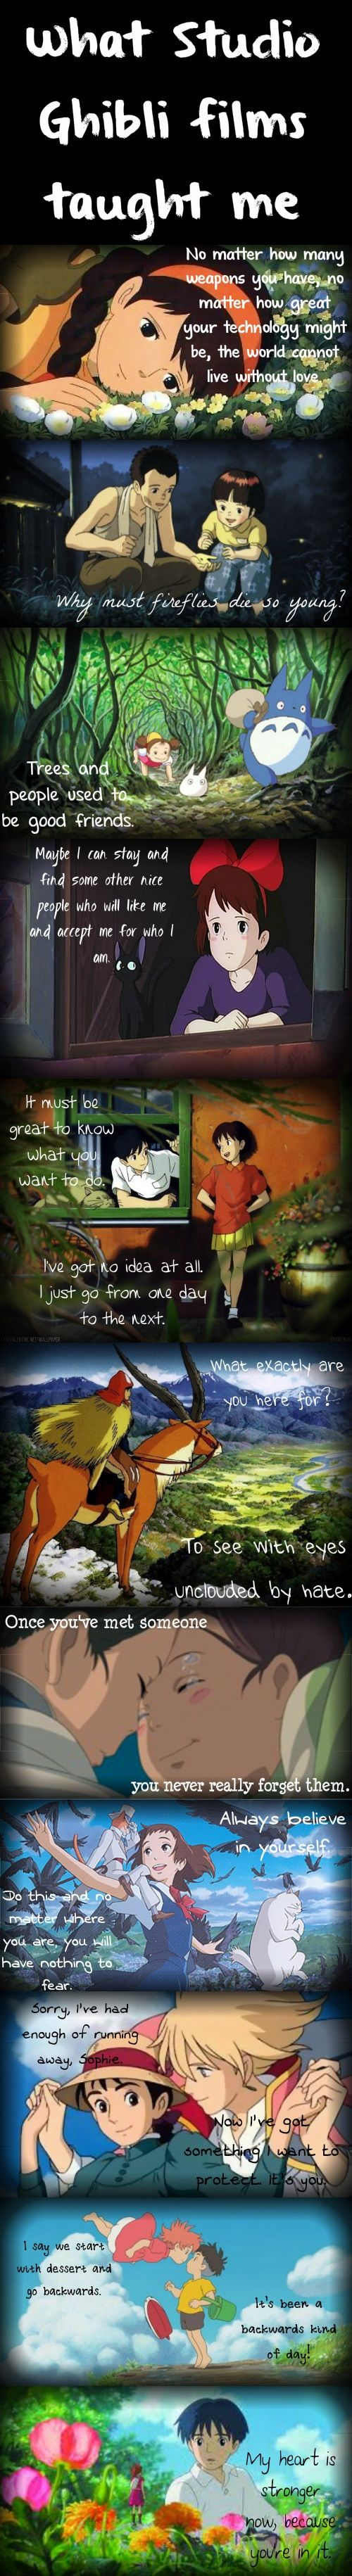 What Studio Ghibli films taught me  Laputa: Castle in the Sky, Grave of the…